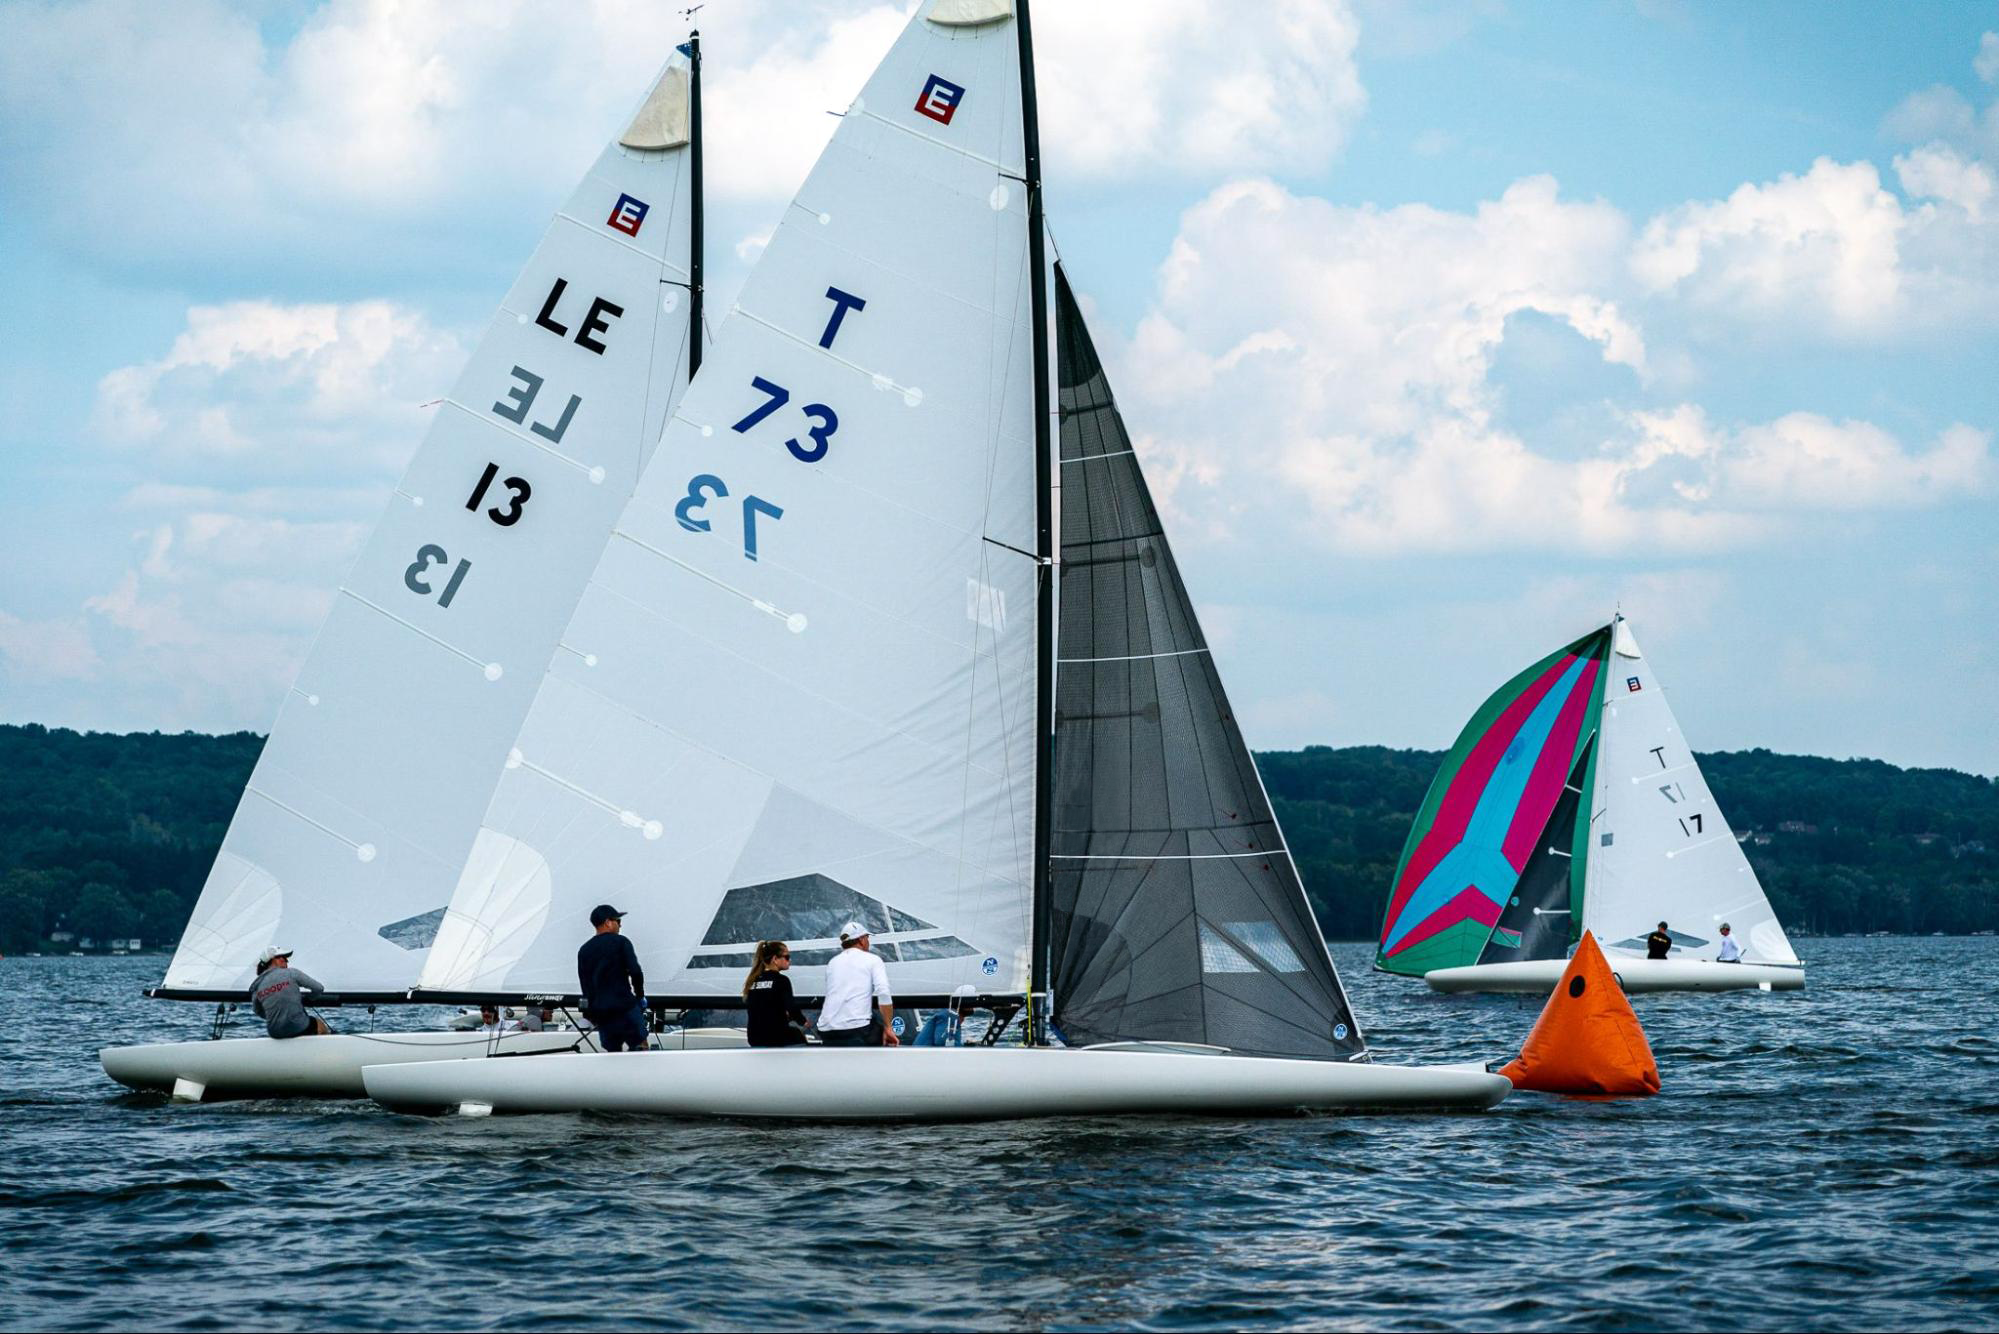 New E Scow 3D-designed mainsail at the Easterns.